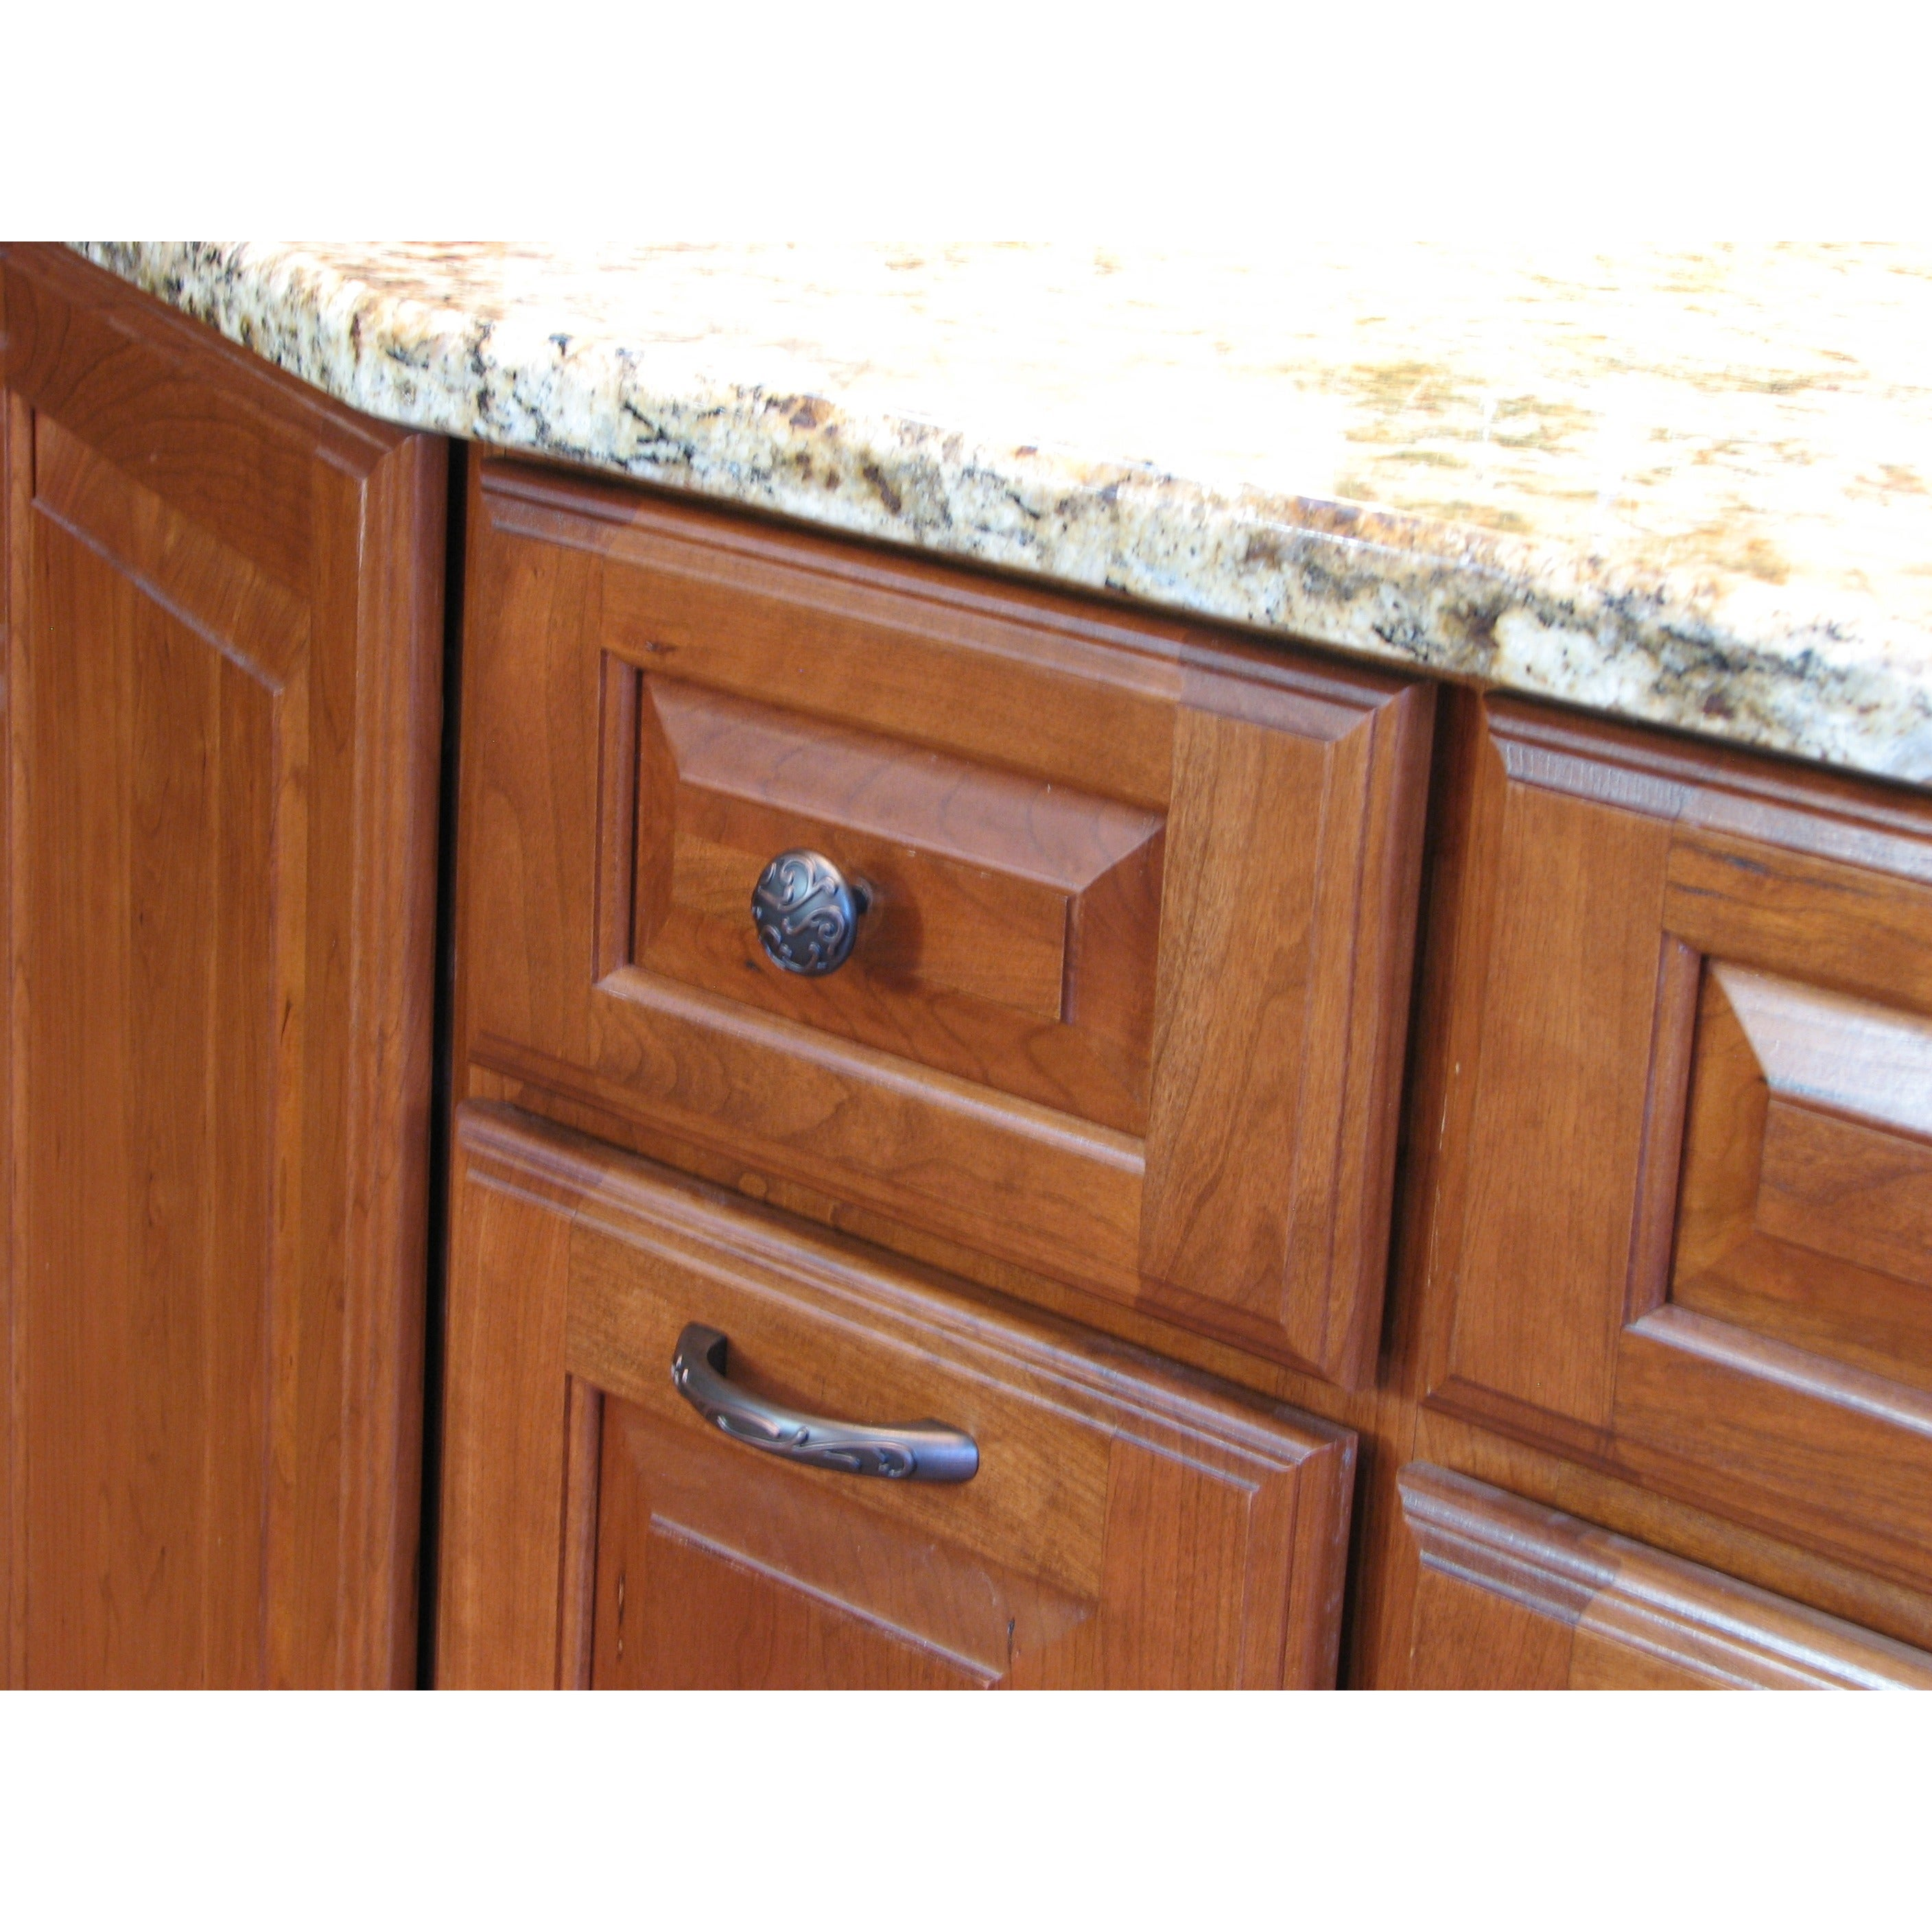 in cabinet rubbed and pulls oil handles bin knobs garden bronze cup hardware pin home ebay